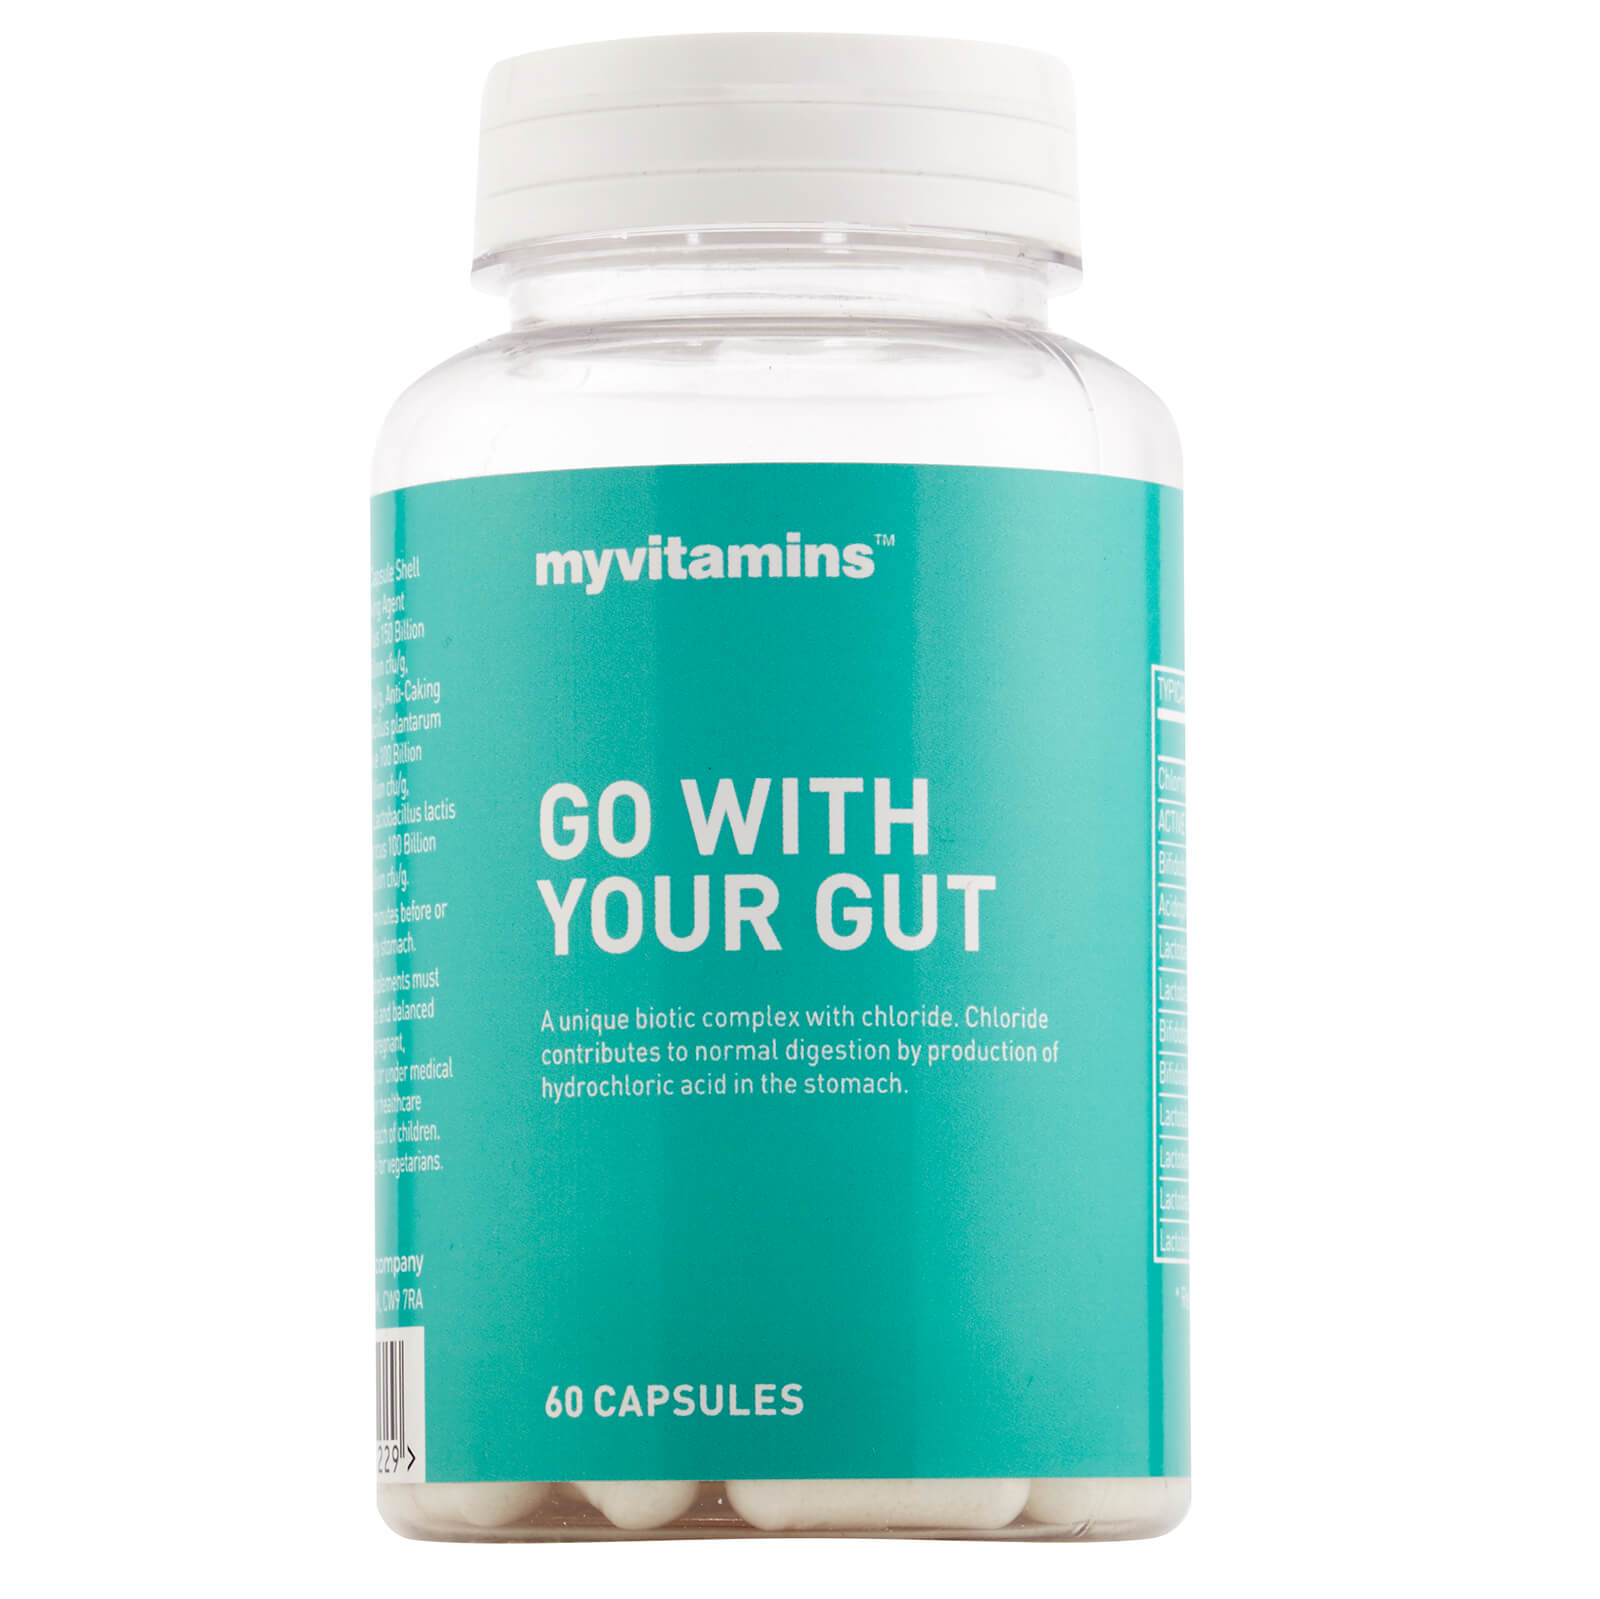 Myvitamins Go With Your Gut, 60 Capsules